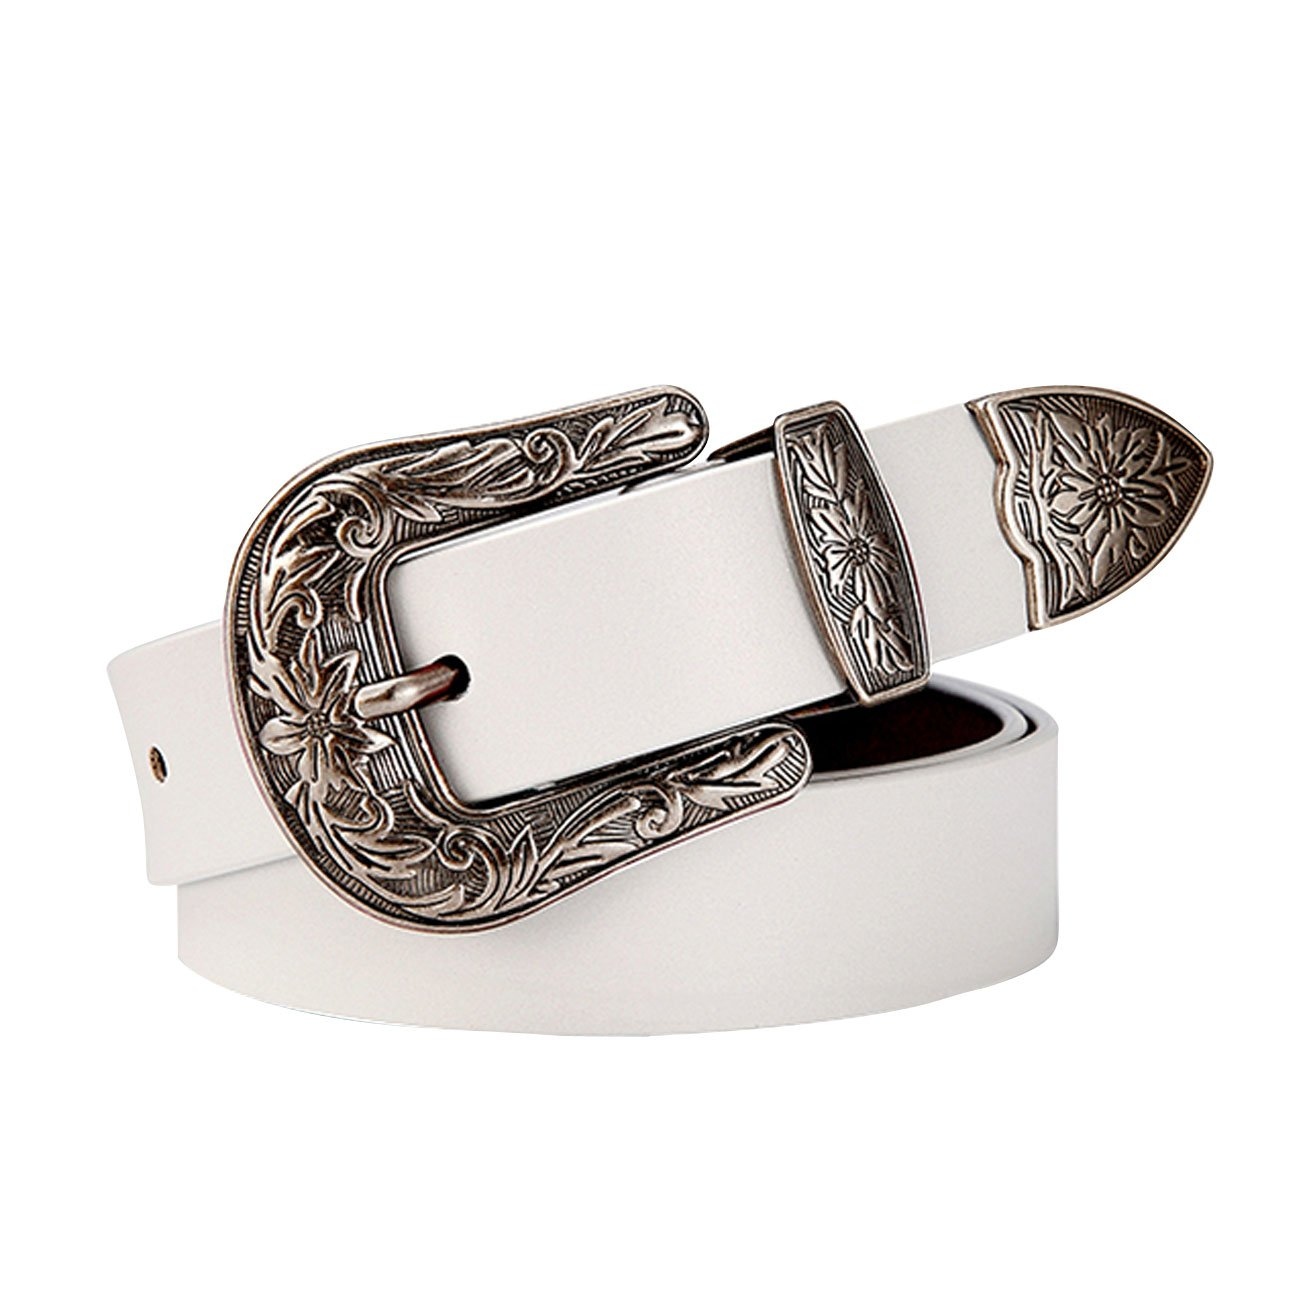 E-Clover Vintage Western Cowgirl Leather Belt Carved Buckle Dress Belt For S Size Women (White)